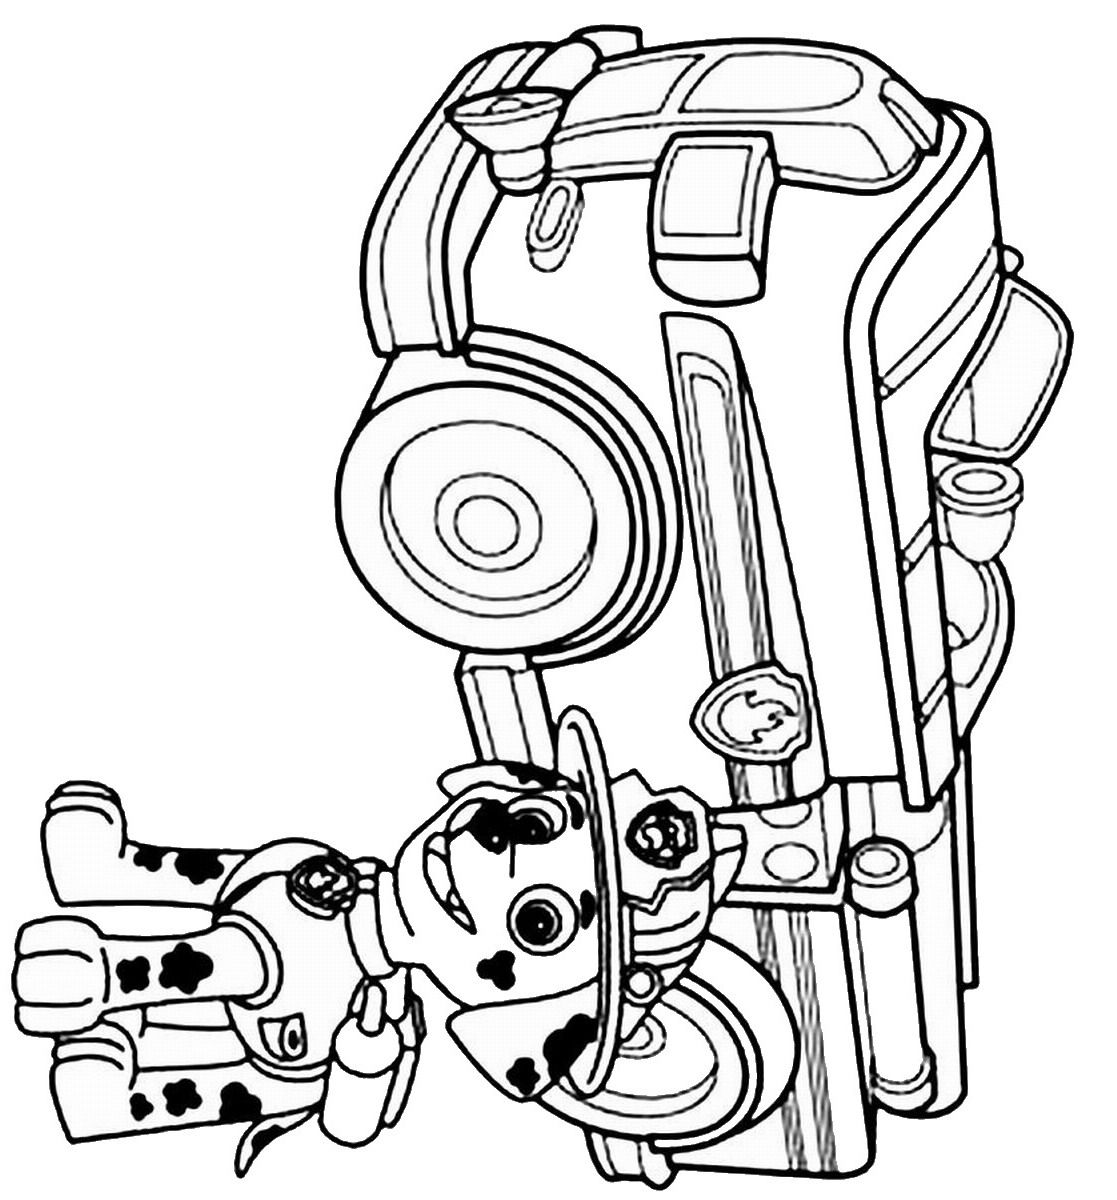 paw patrol free coloring pages printable free nick jr paw patrol coloring pages patrol paw coloring free pages printable